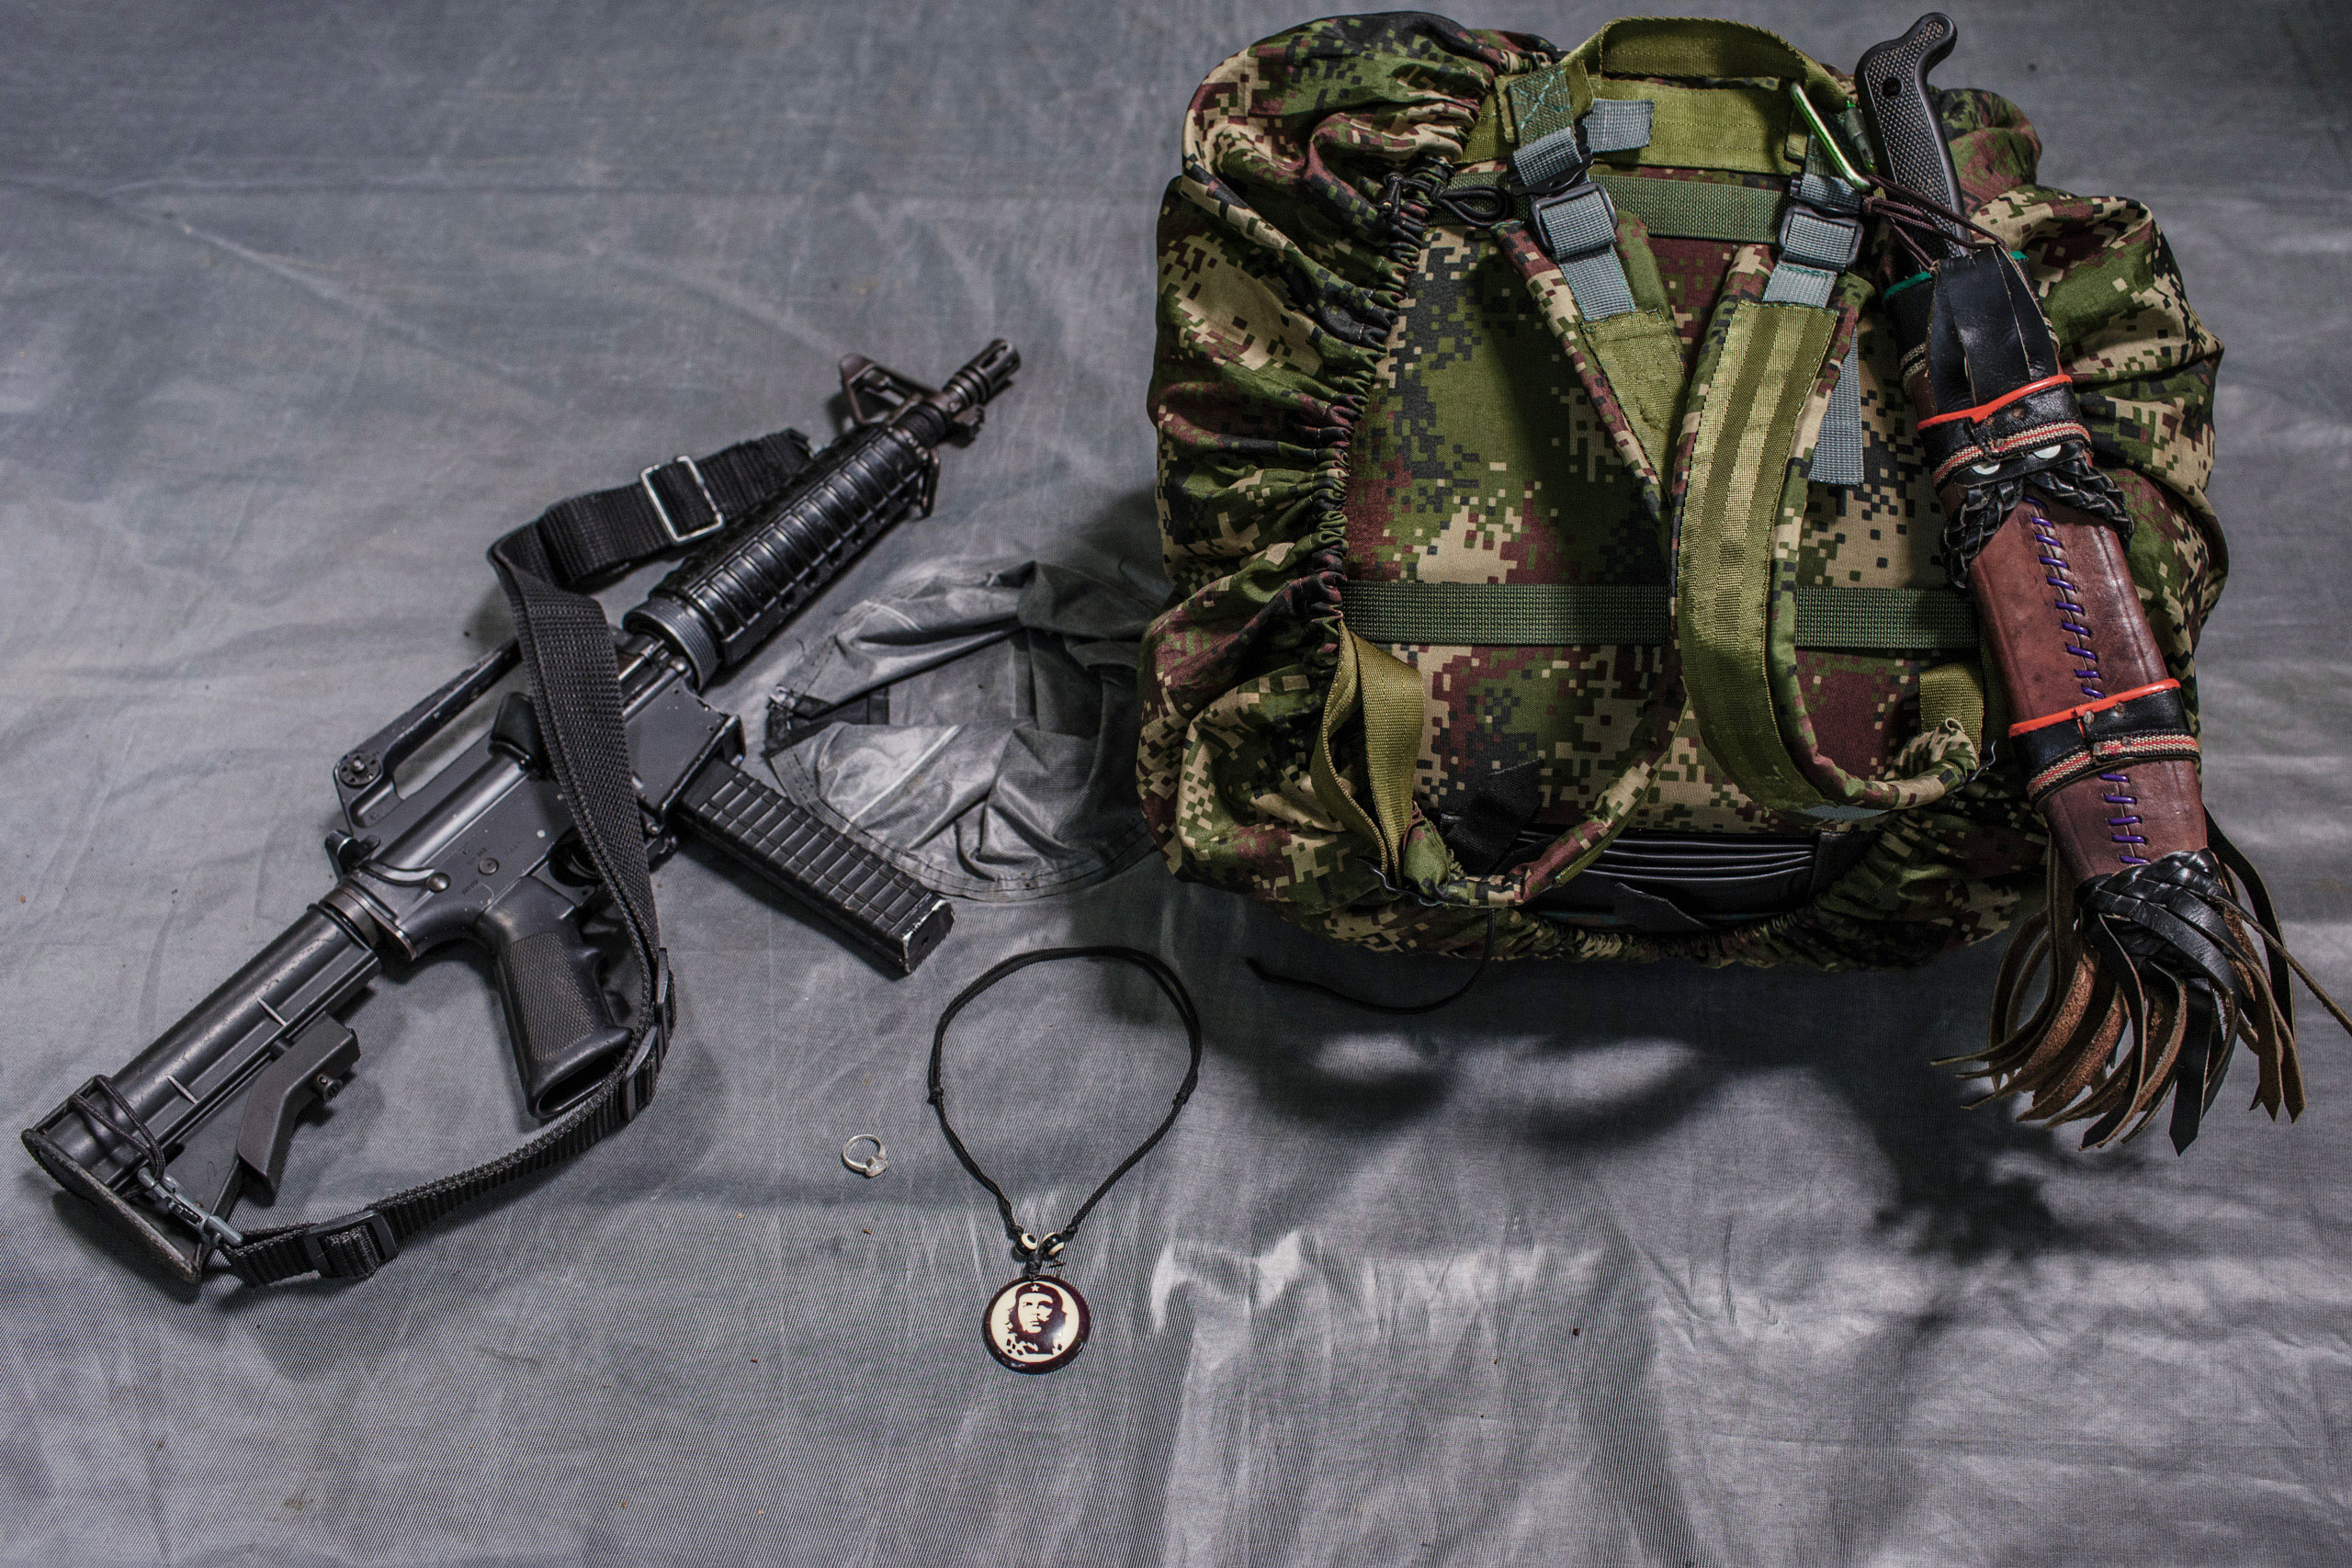 The backpack carried by 31-year-old FARC commander,  Brenda.  She has been a member of FARC for 15 years. Besides, her rifle, pistol, and commuter for intelligence mission, she always has space in her backpack for nail polish and perfume.  Her boyfriend is also a member of FARC.